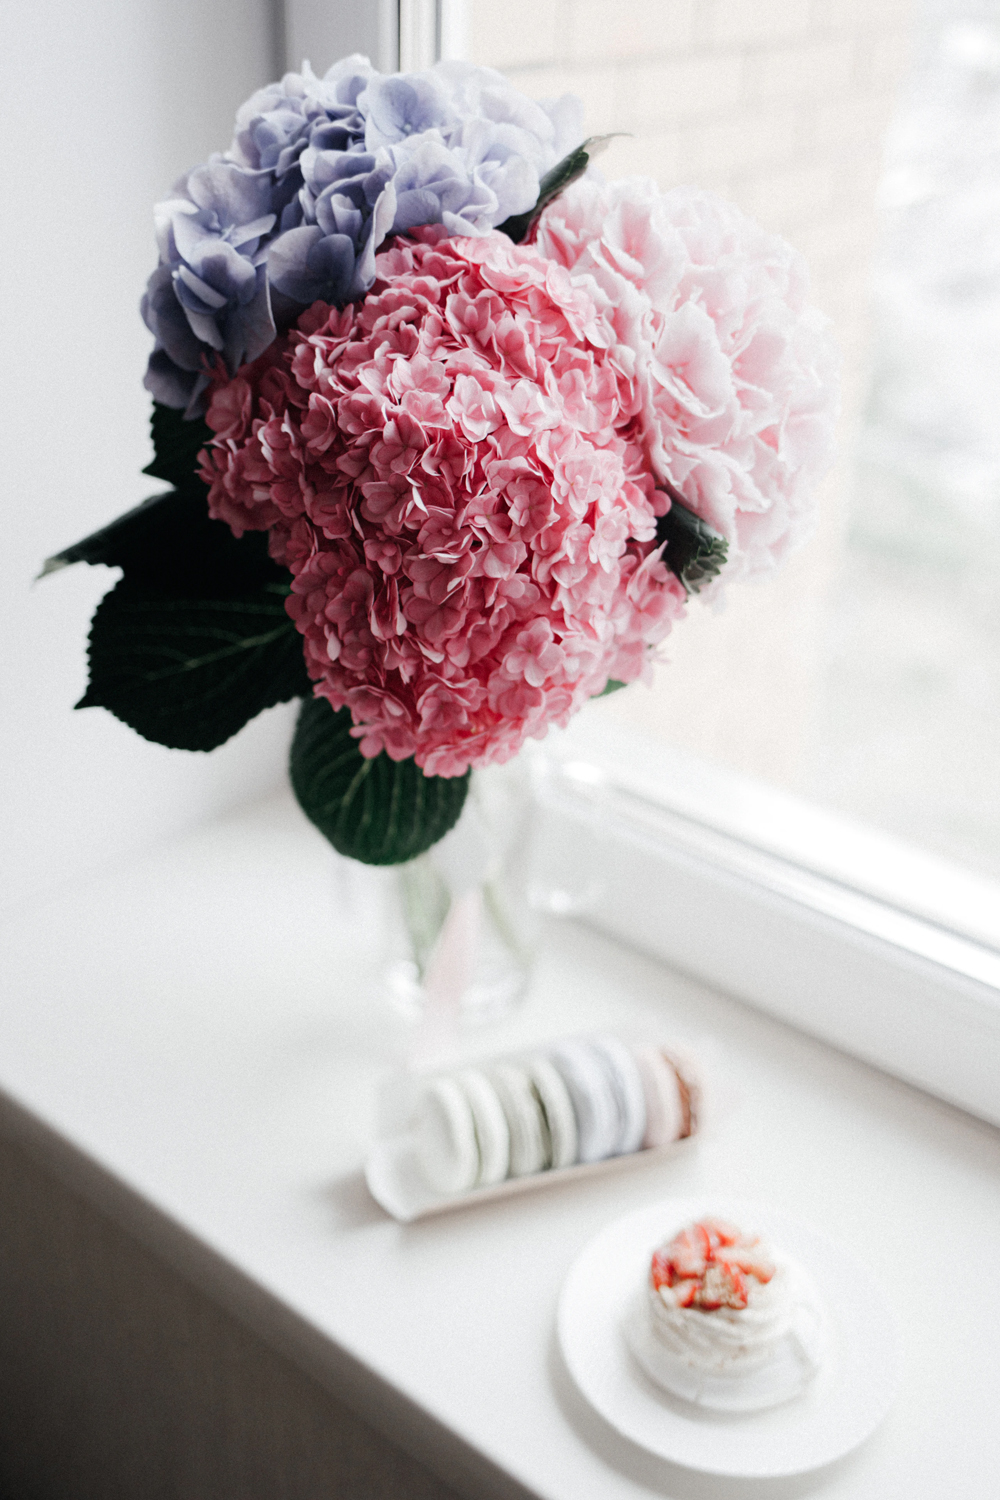 a bouquet of Hydrangeas on the window close to the cup of tea